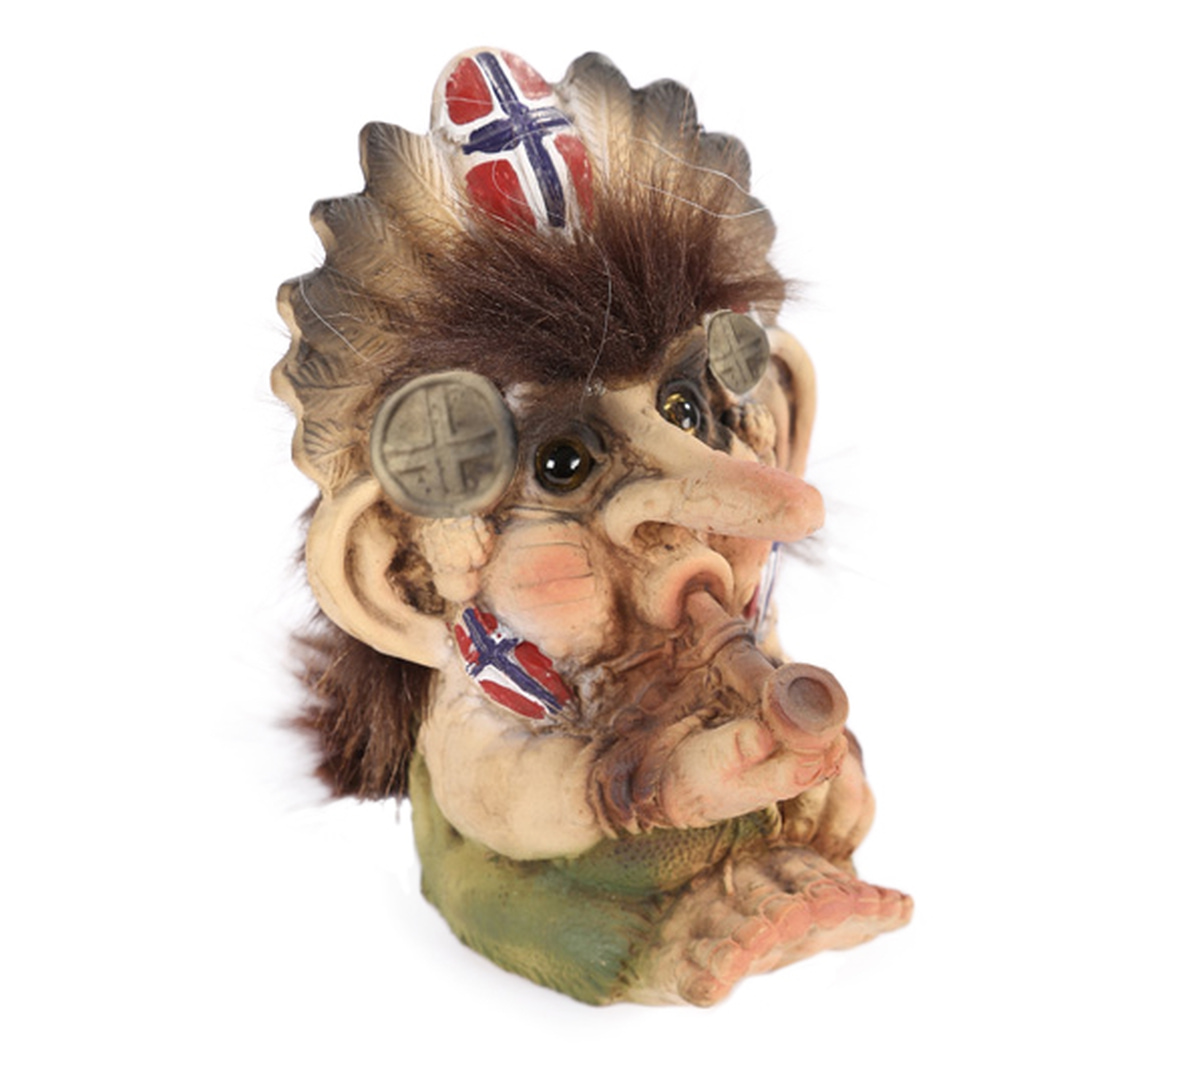 Troll with peace pipe, flag, (Troll # 025)